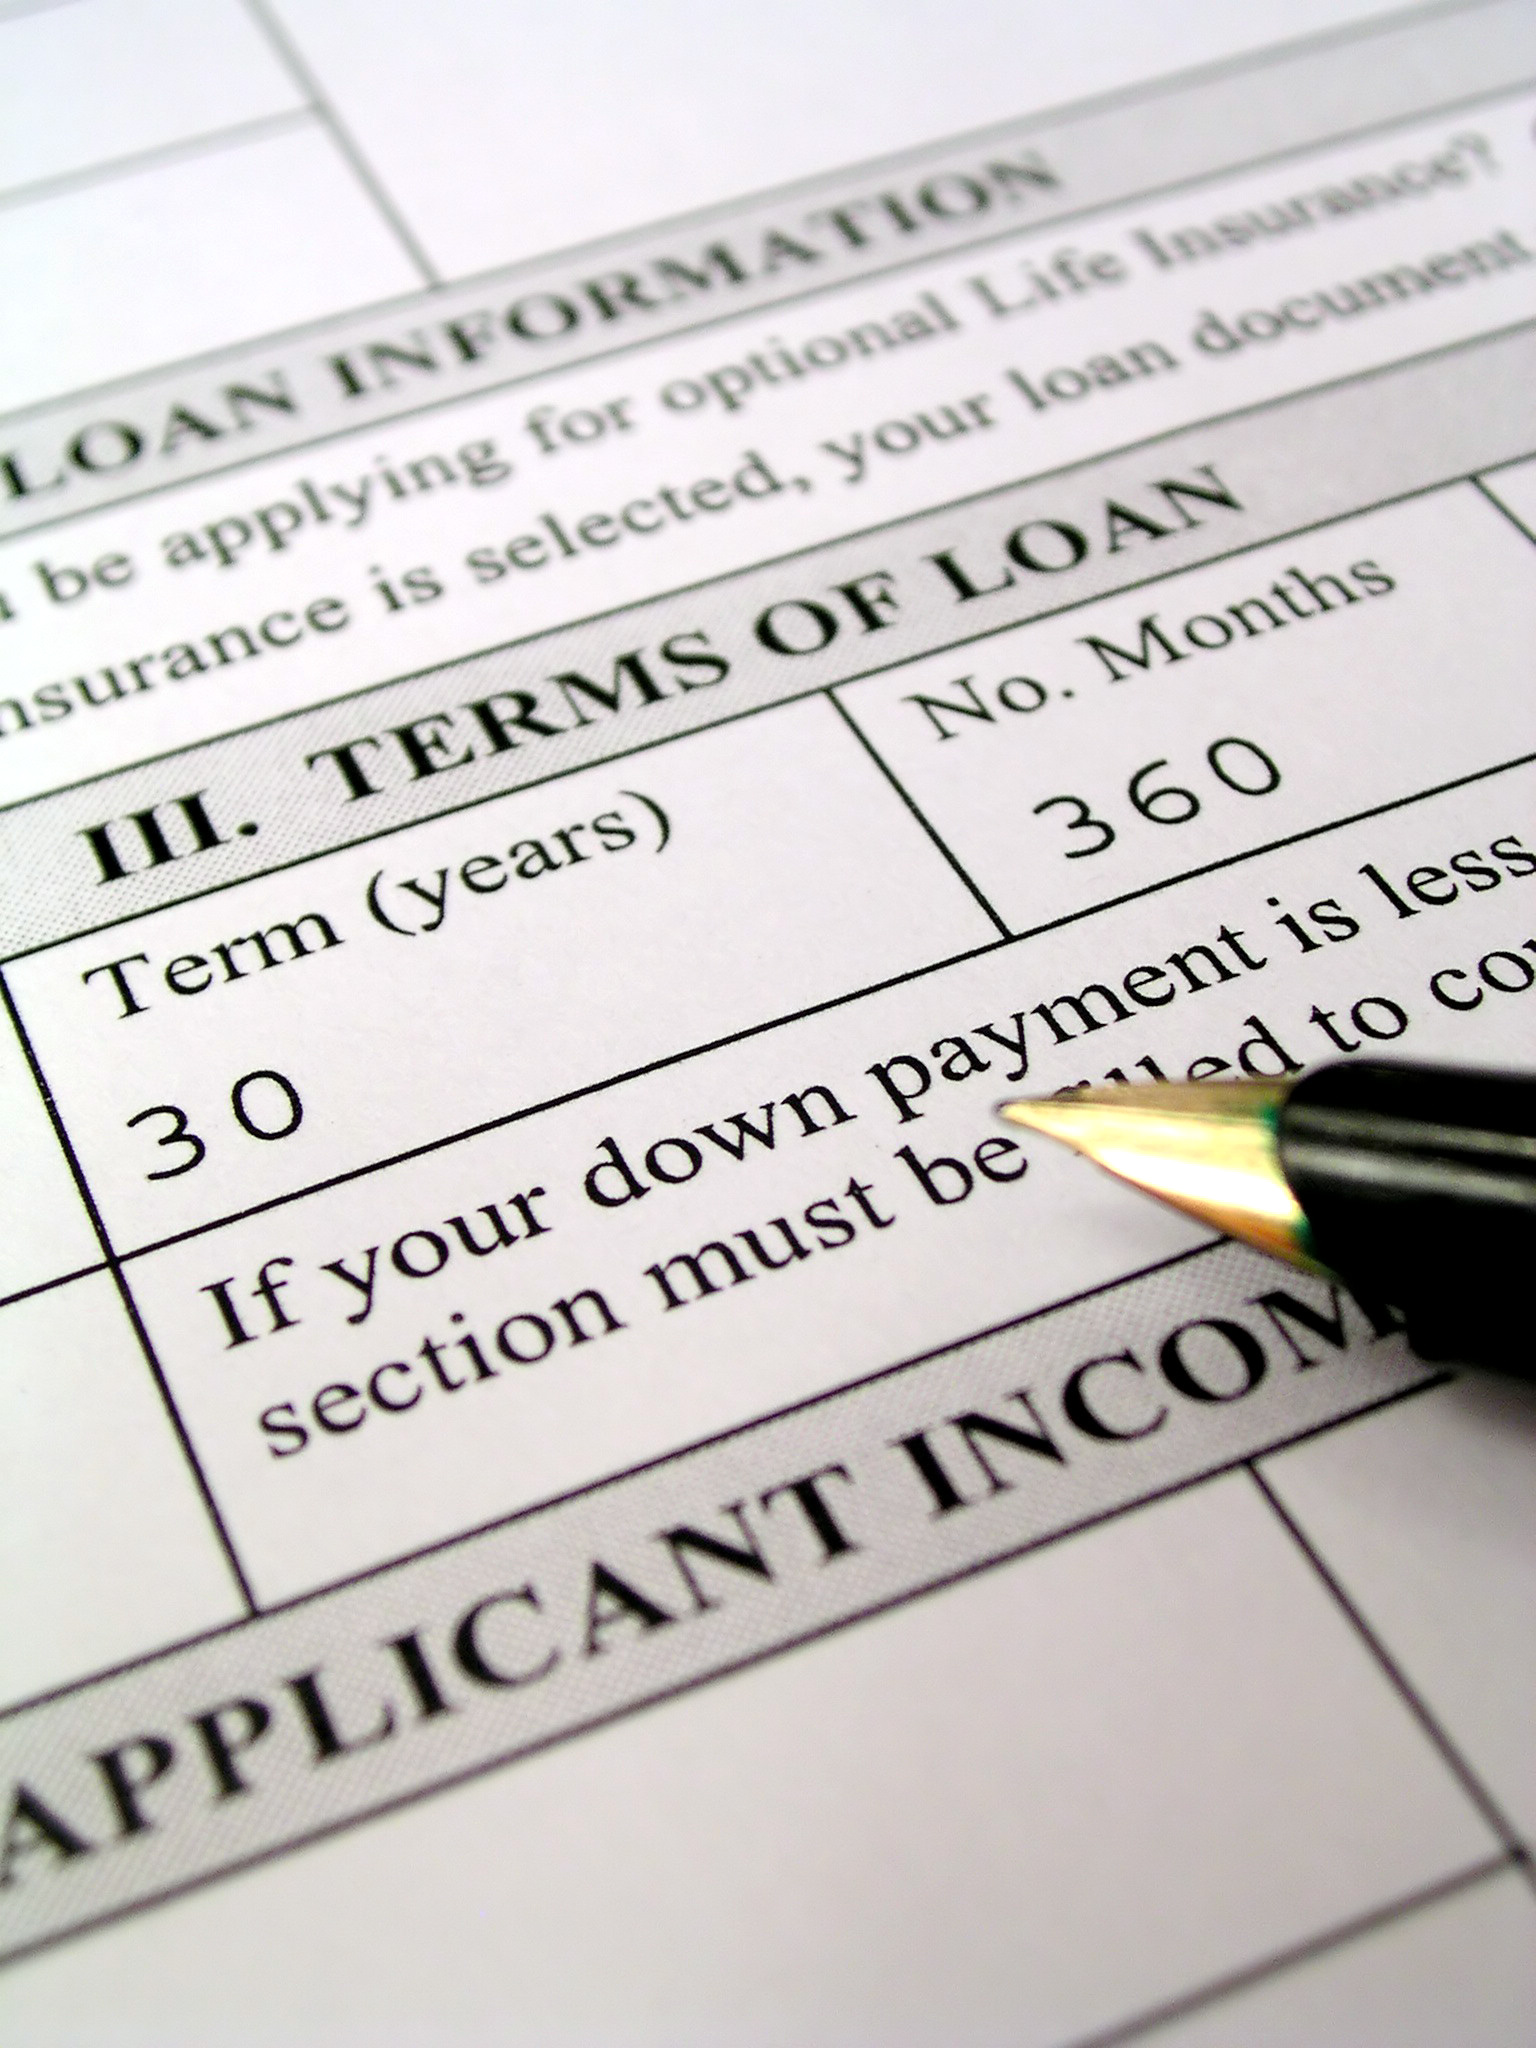 Loan application, being turned down for a business bank loan